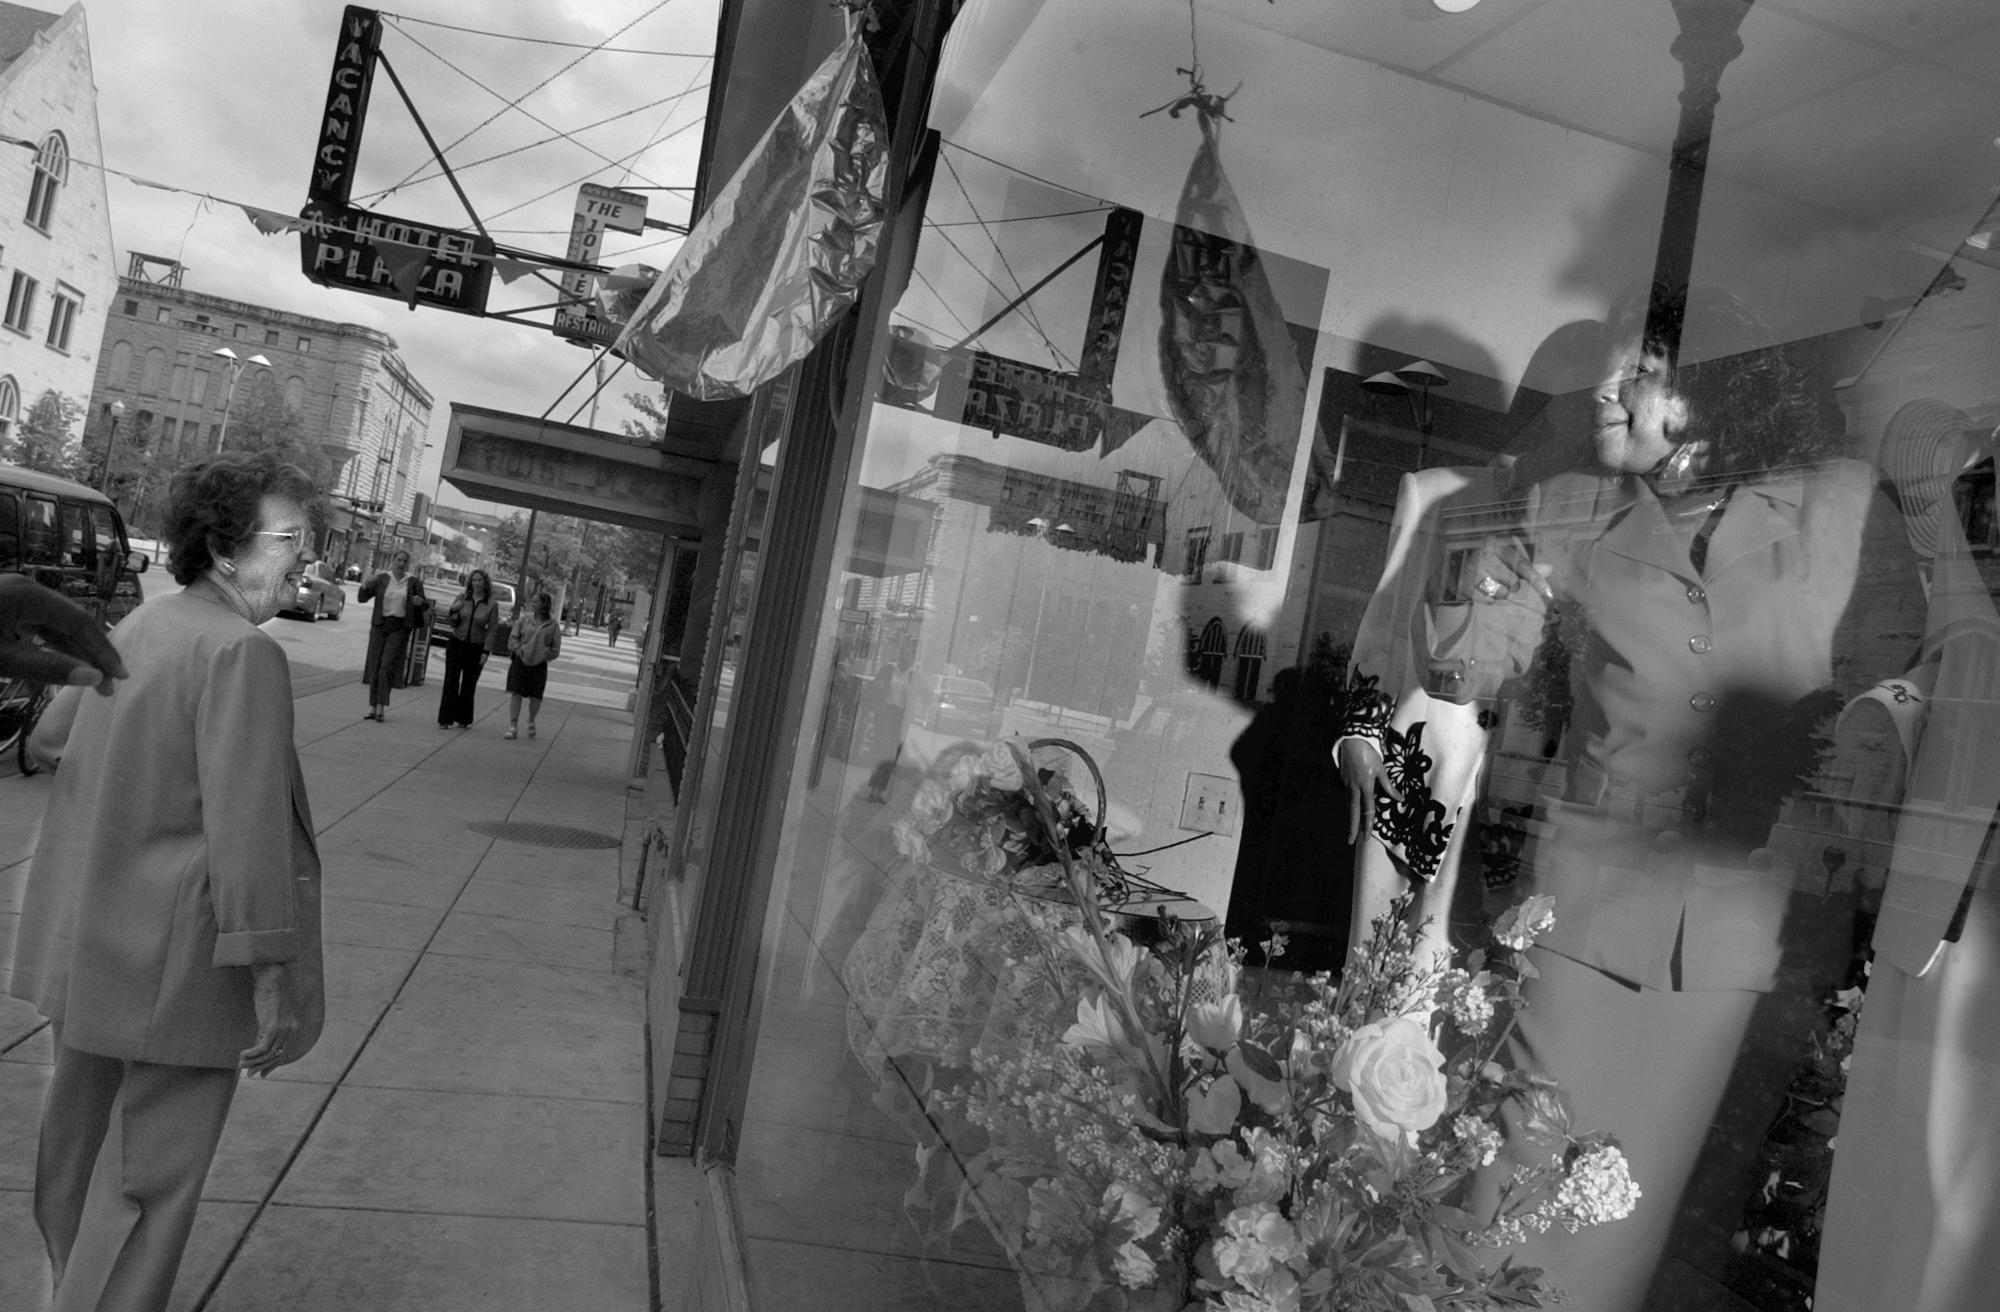 ROBERT SUMNER . HERALD NEWS STAFF PHOTOGRAPHER Elsie Yates waves to a pedestrian who passes her shop, Jole Fashion Boutique, on West Clinton Street in Joliet. She says people often compliment her on the display windows at the store. 082204